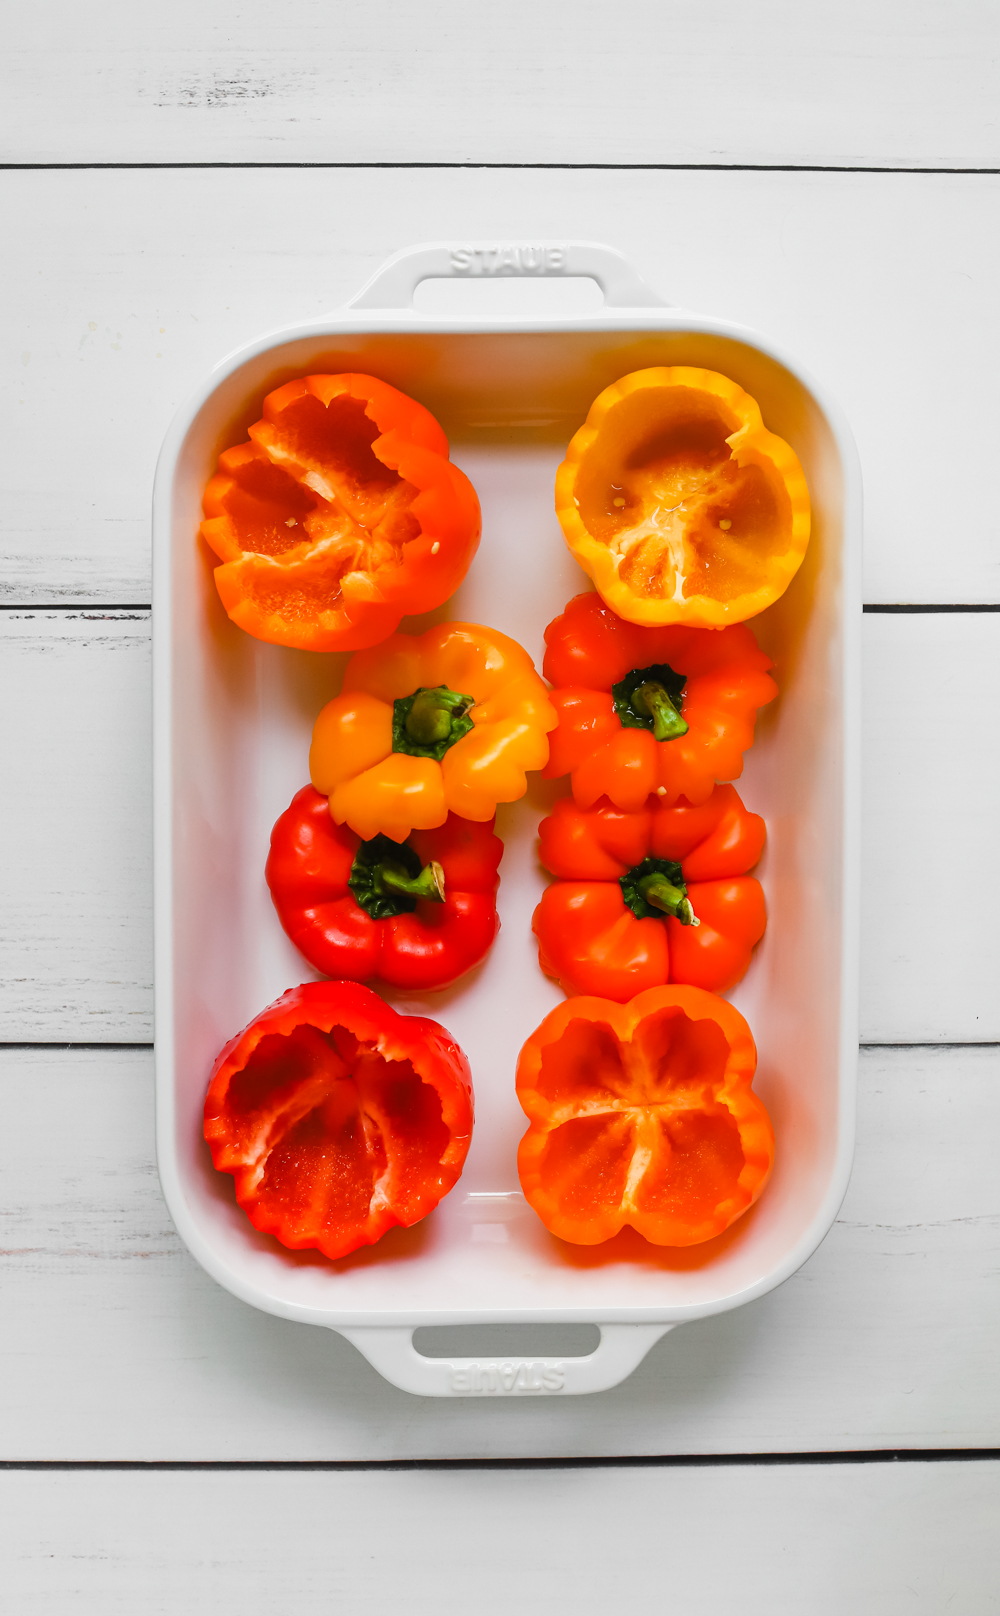 Four yellow, orange, and red bell peppers and their tops in a large white high rimmed baking dish.